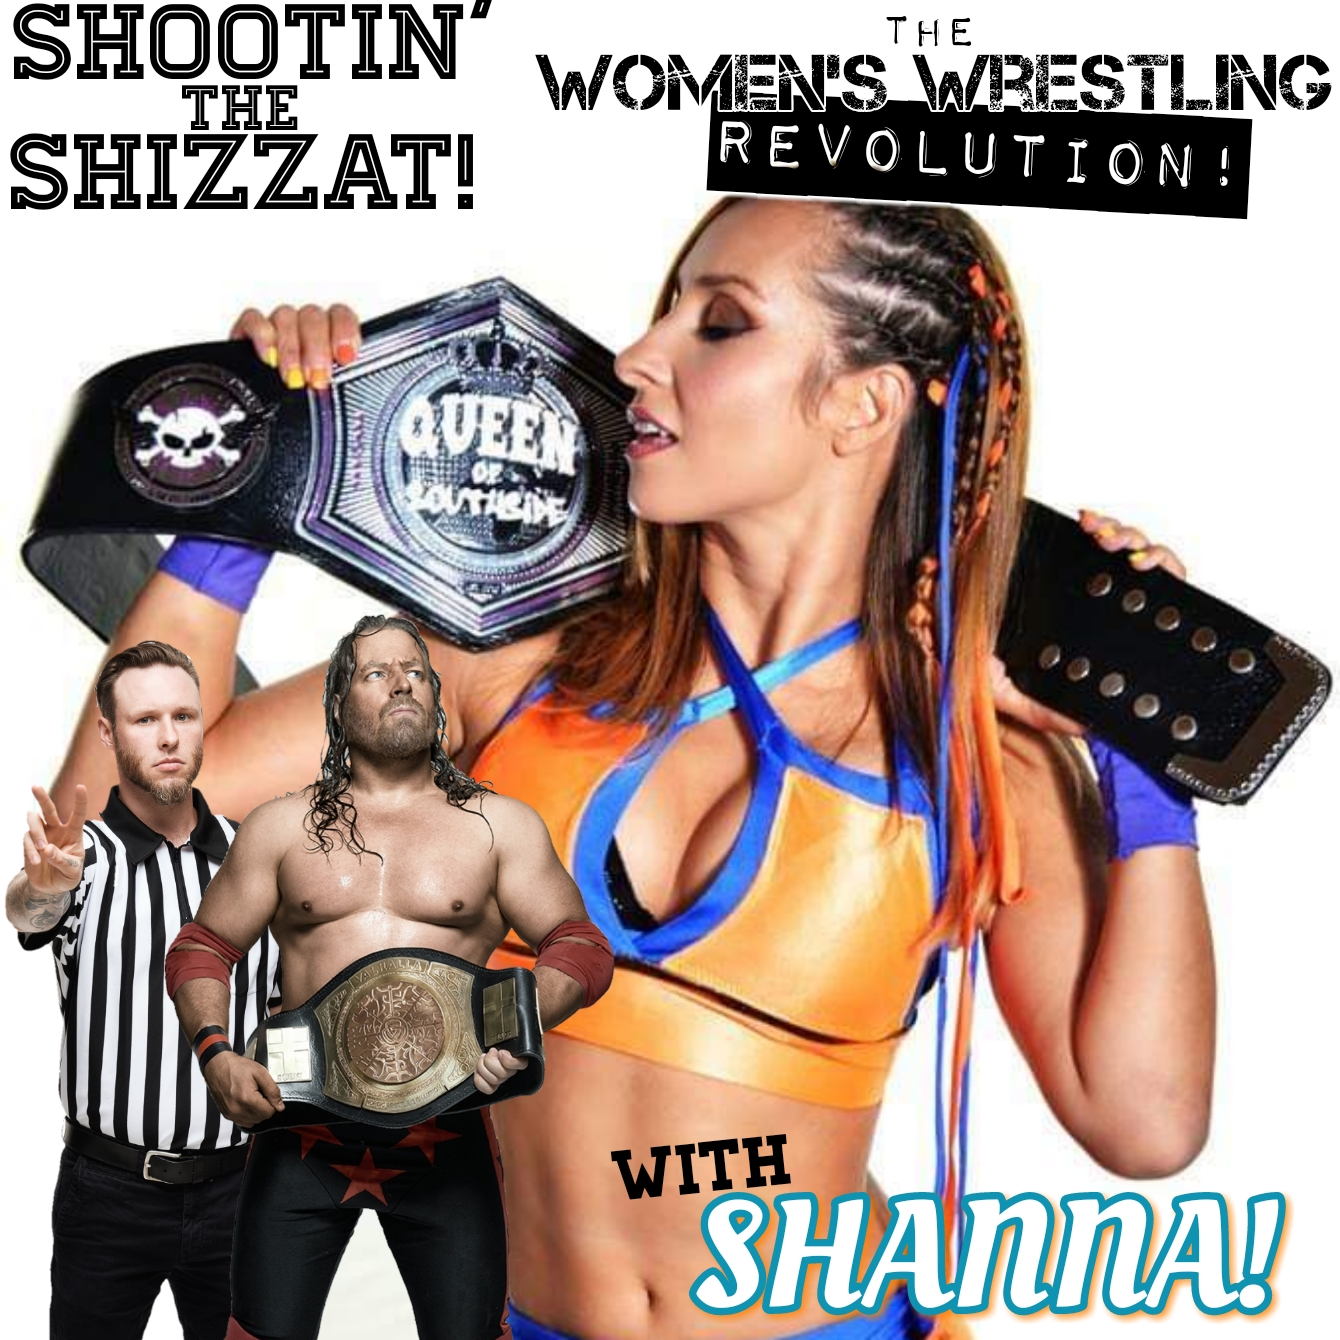 The Women's Wrestling Revolution! With the Perfect Shanna!